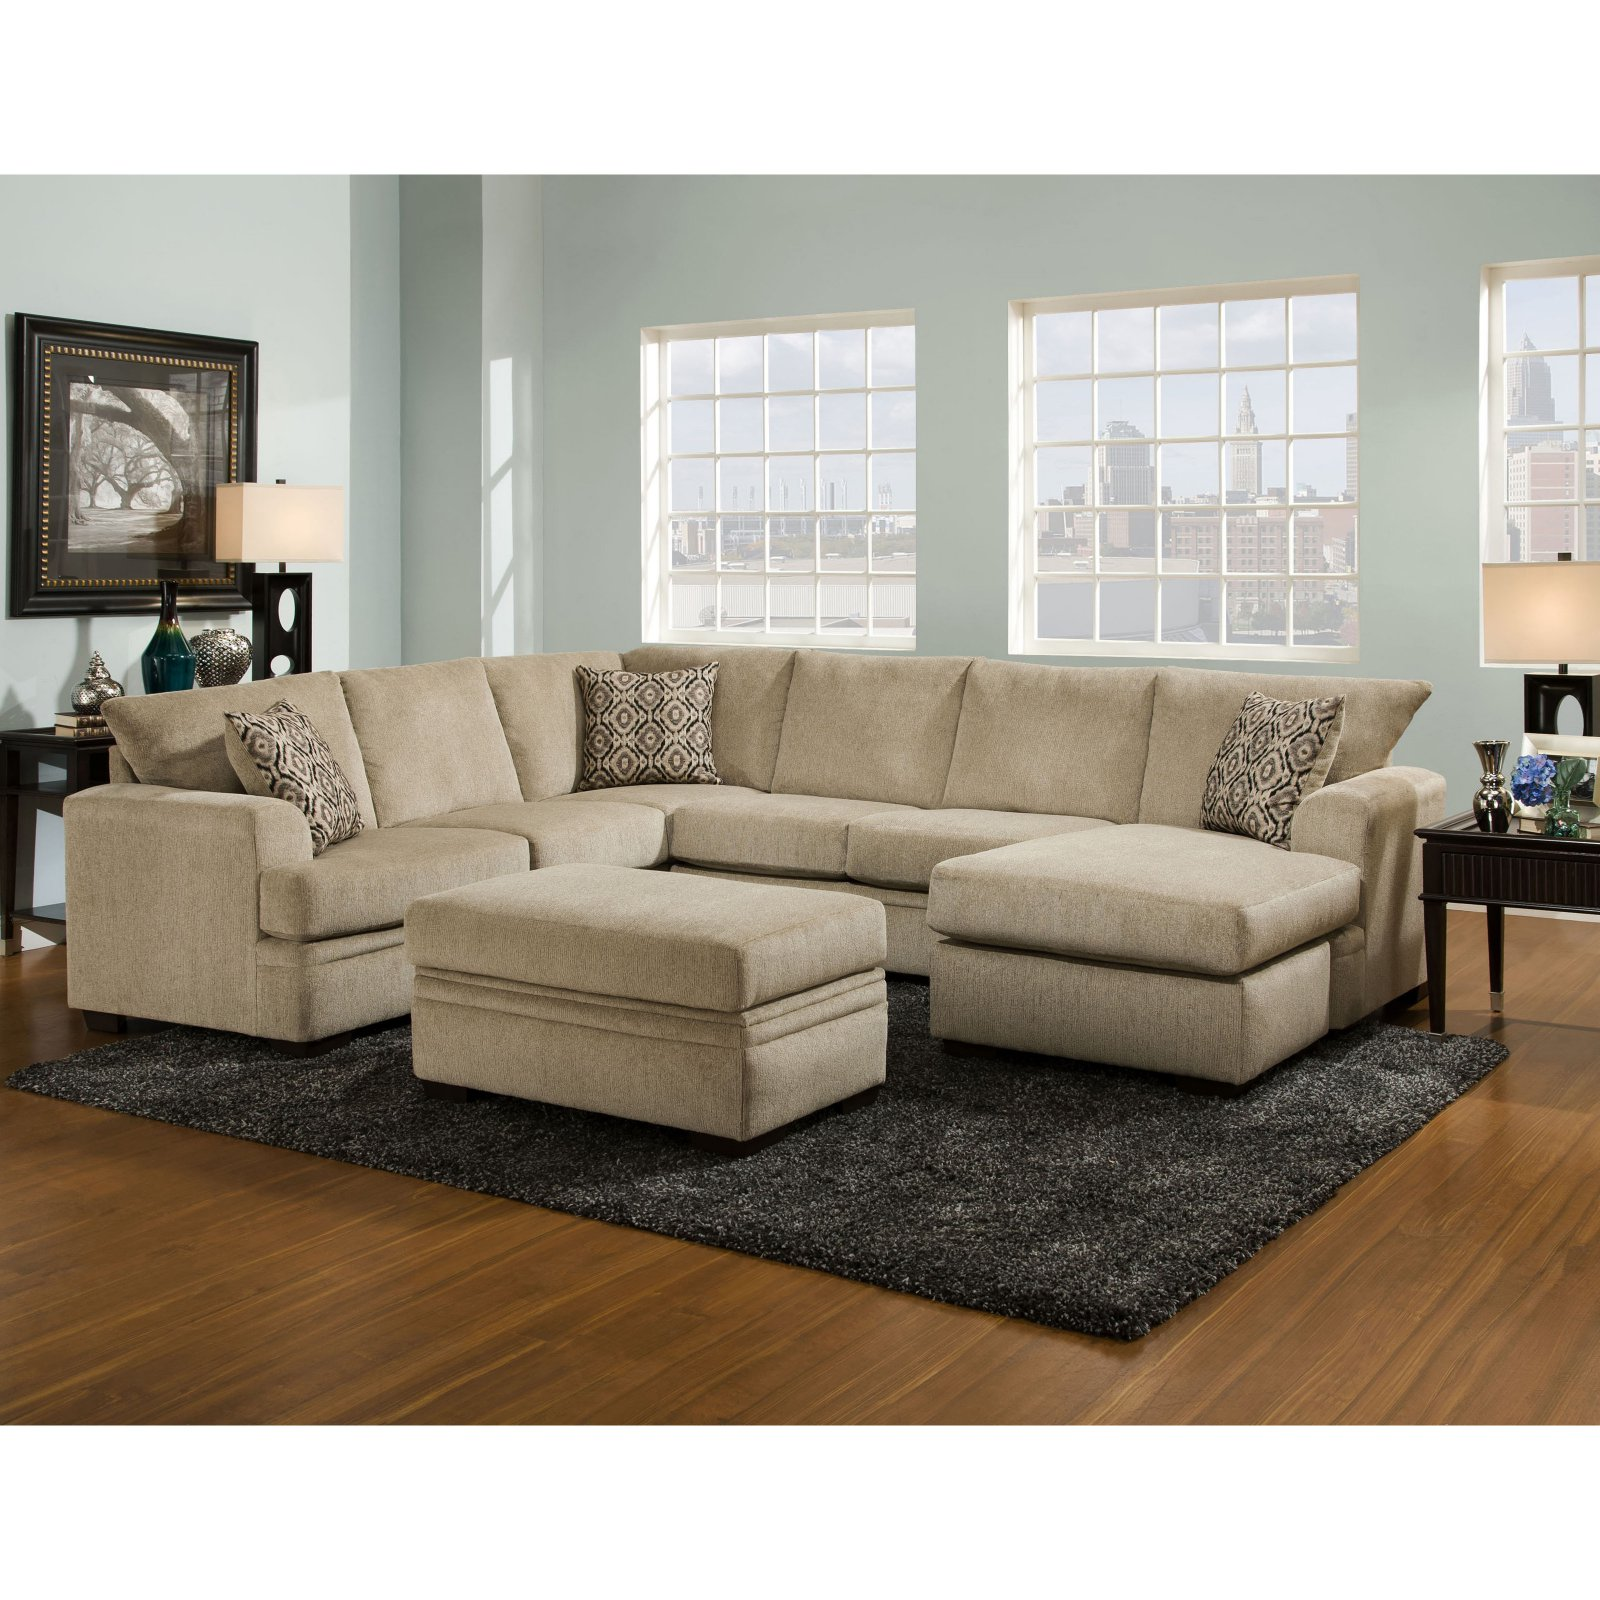 Chelsea Home Furniture Atherton 2 Piece Sectional Furniture